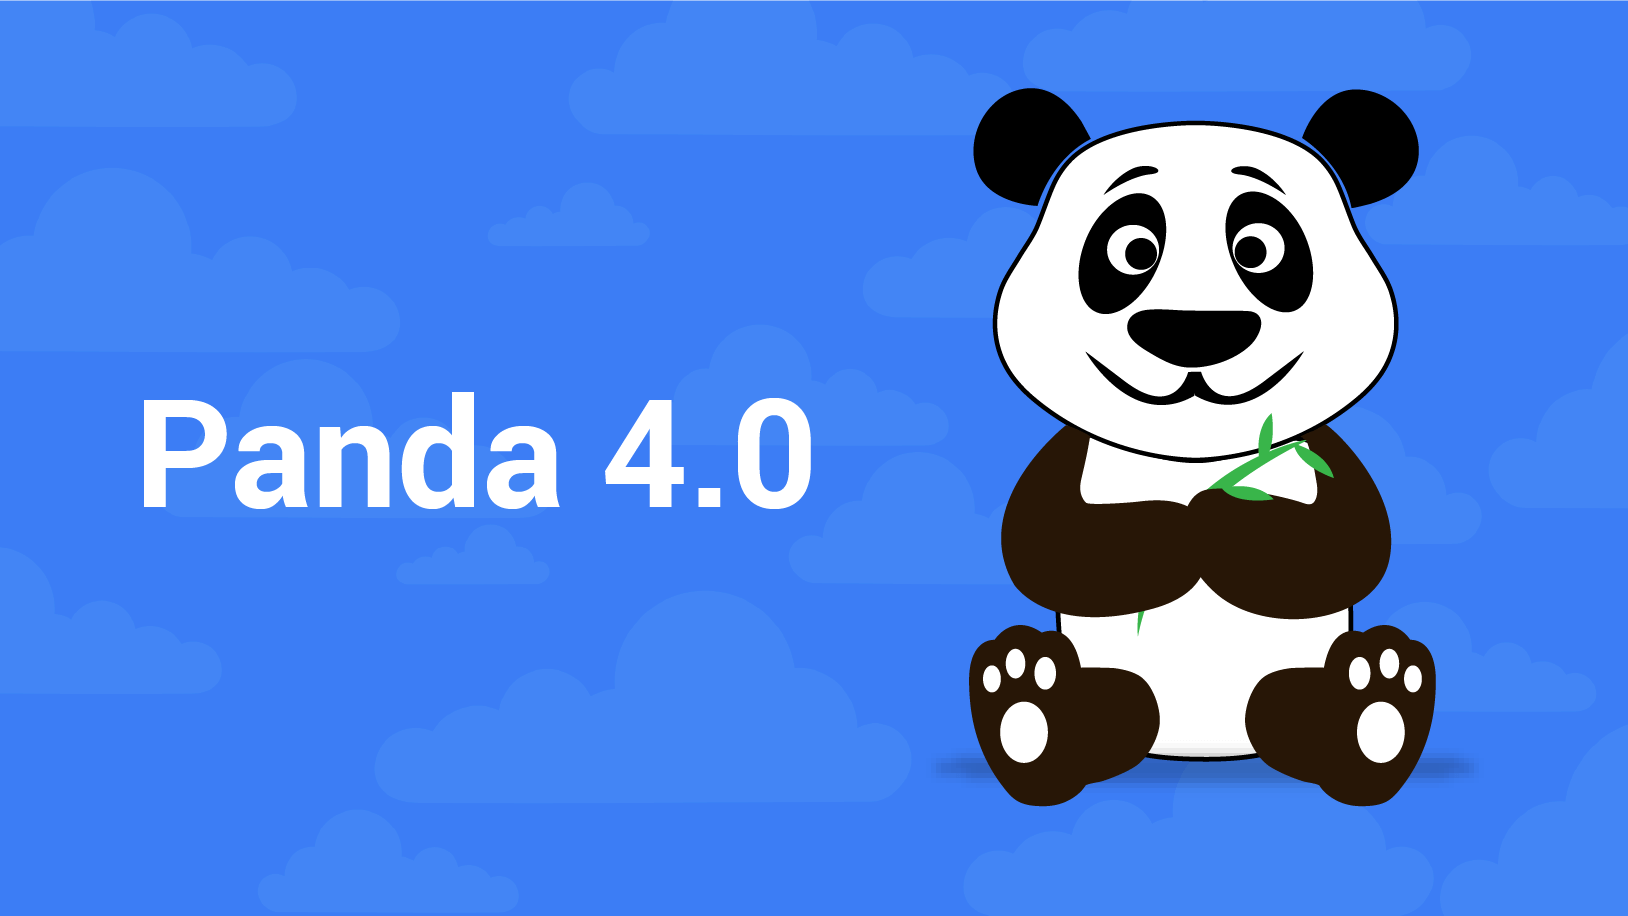 Google Panda 4.0 Rolled Out Today